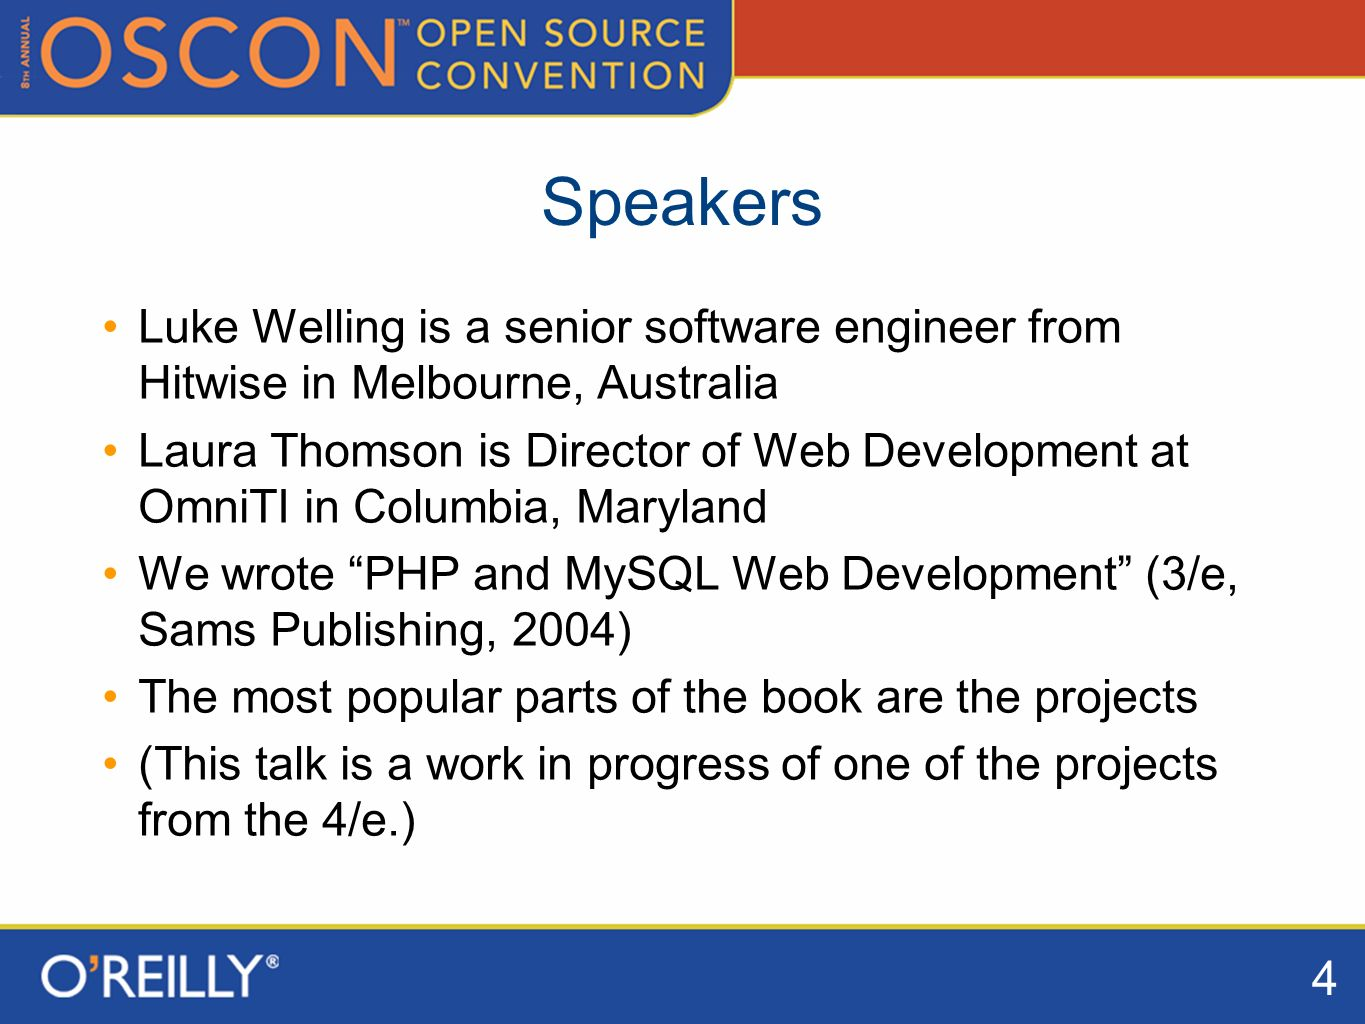 4 Speakers Luke Welling is a senior software engineer from Hitwise in Melbourne, Australia Laura Thomson is Director of Web Development at OmniTI in Columbia, Maryland We wrote PHP and MySQL Web Development (3/e, Sams Publishing, 2004) The most popular parts of the book are the projects (This talk is a work in progress of one of the projects from the 4/e.)